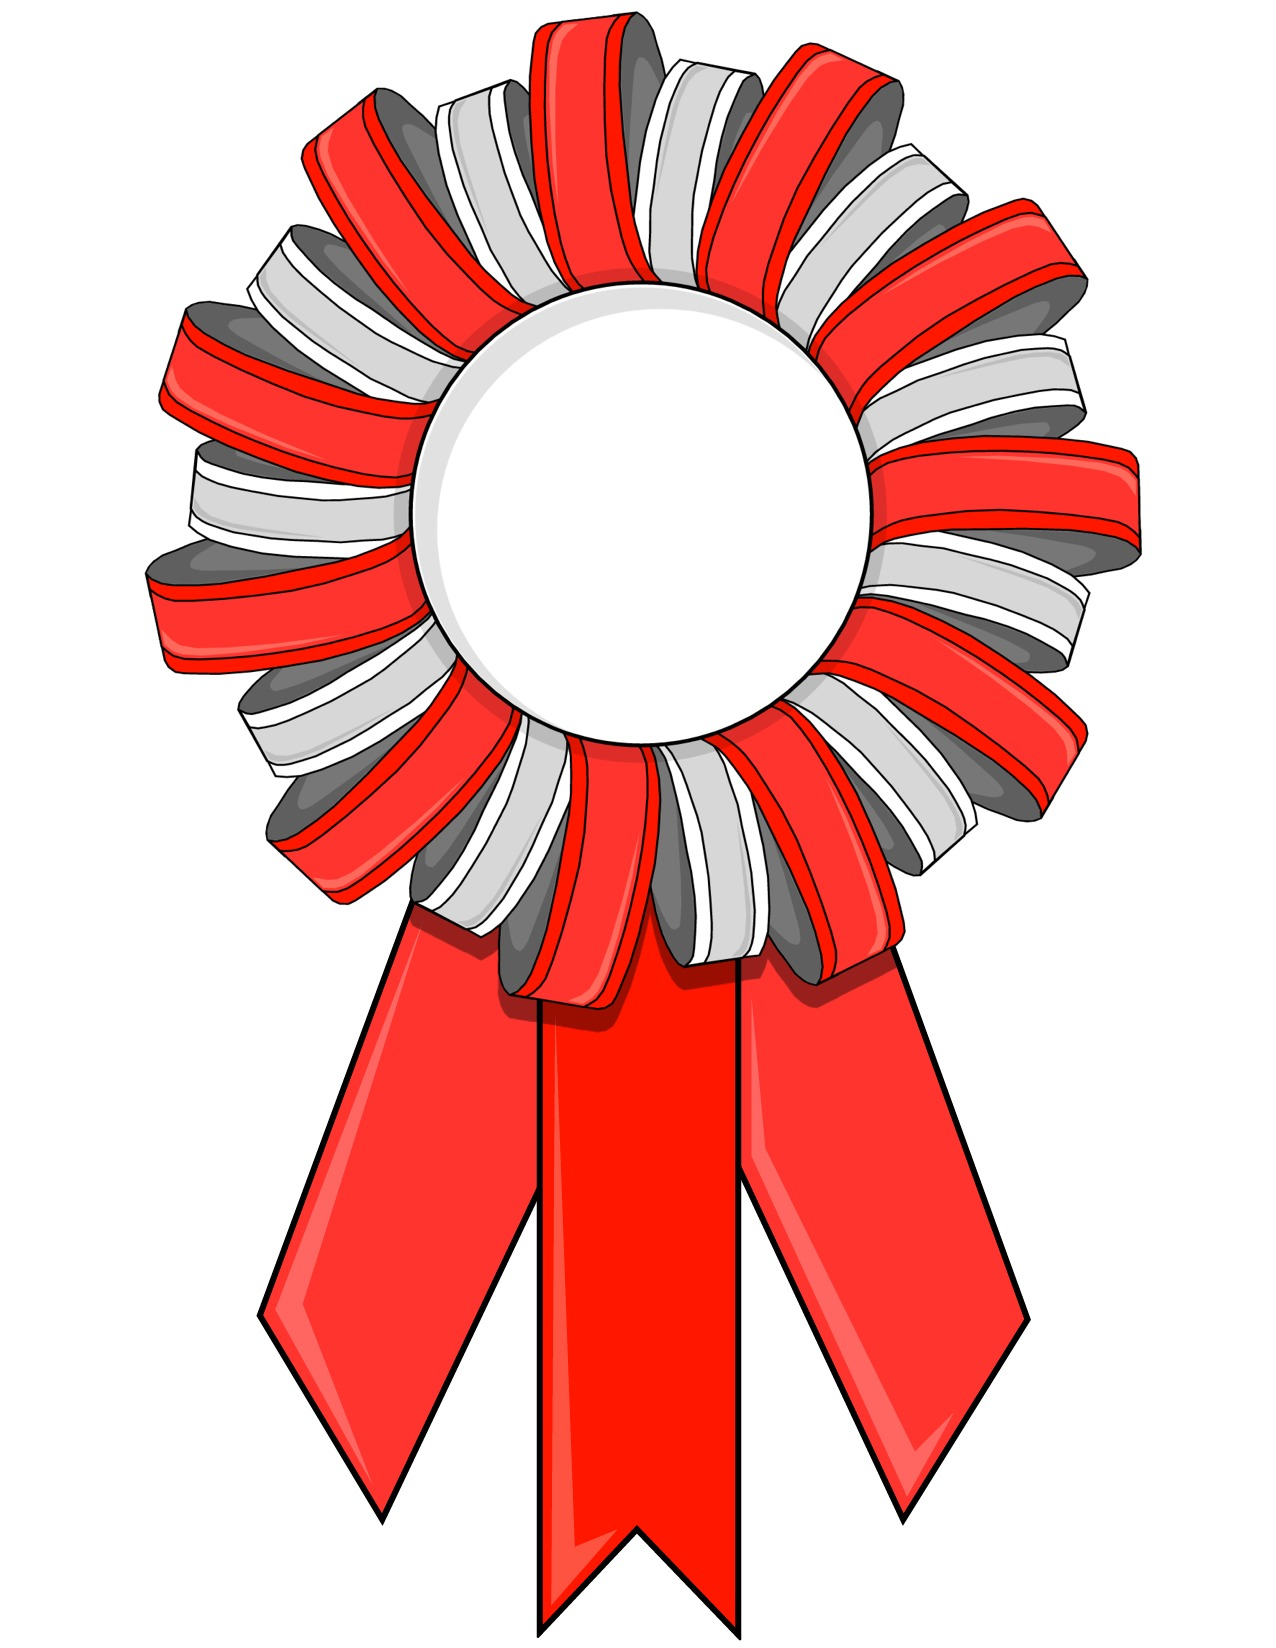 Fabulous image pertaining to printable award ribbons